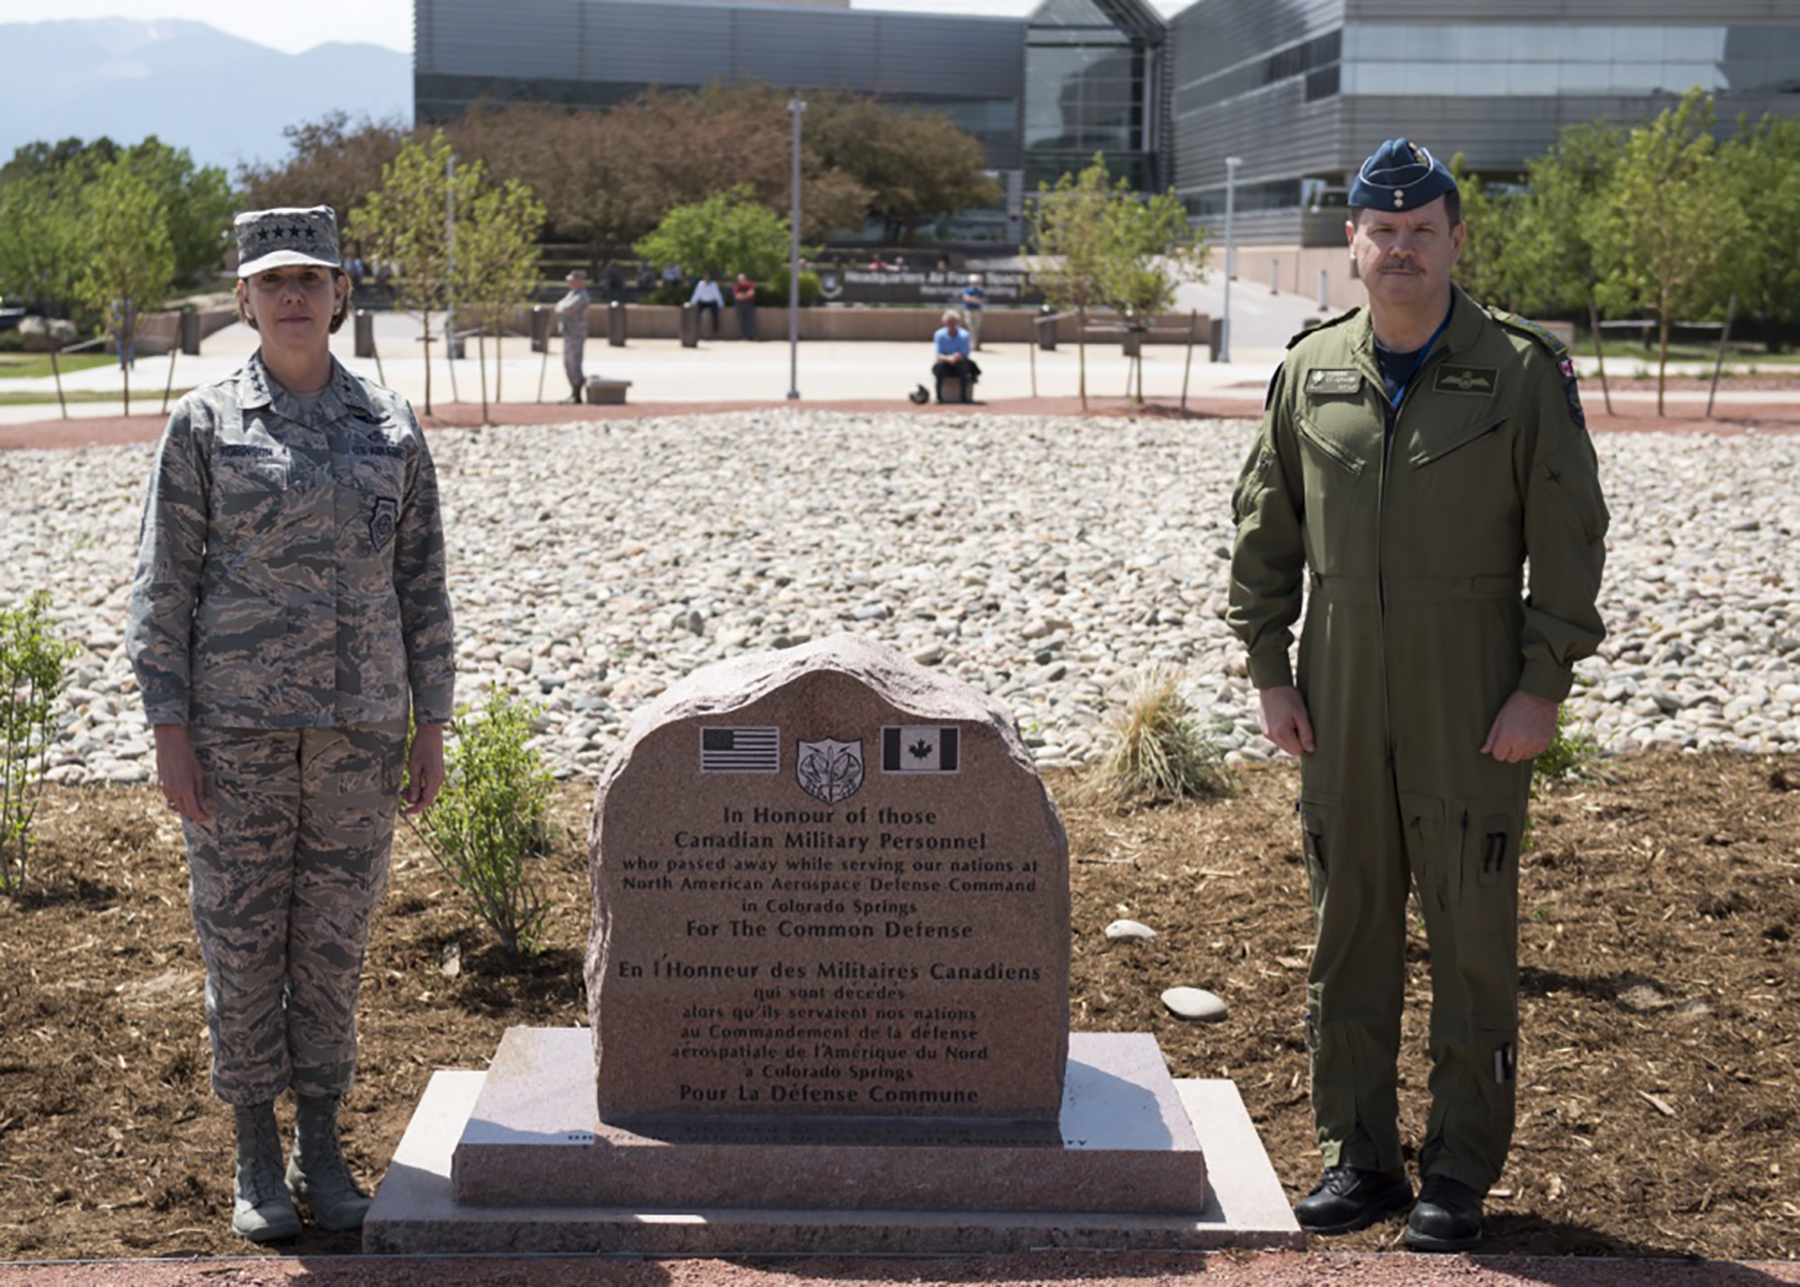 U.S. Air Force General Lori Robinson, Commander of the North American Aerospace Defense Command and U.S. Northern Command, and Canadian Lieutenant-General Pierre St-Amand, NORAD Deputy Commander, pause for a photo during the May 11, 2018, unveiling ceremony for a memorial cairn outside the NORAD and USNORTHCOM headquarters building on Peterson Air Force Base, Colorado. The cairn honors Canadian service men and women who died while serving at NORAD in Colorado Springs. The placement and dedication of the cairn was conducted in conjunction with the 60th Anniversary of NORAD and the Canada/U.S. binational NORAD agreement. PHOTO: U.S. DoD, N&NC Public Affairs